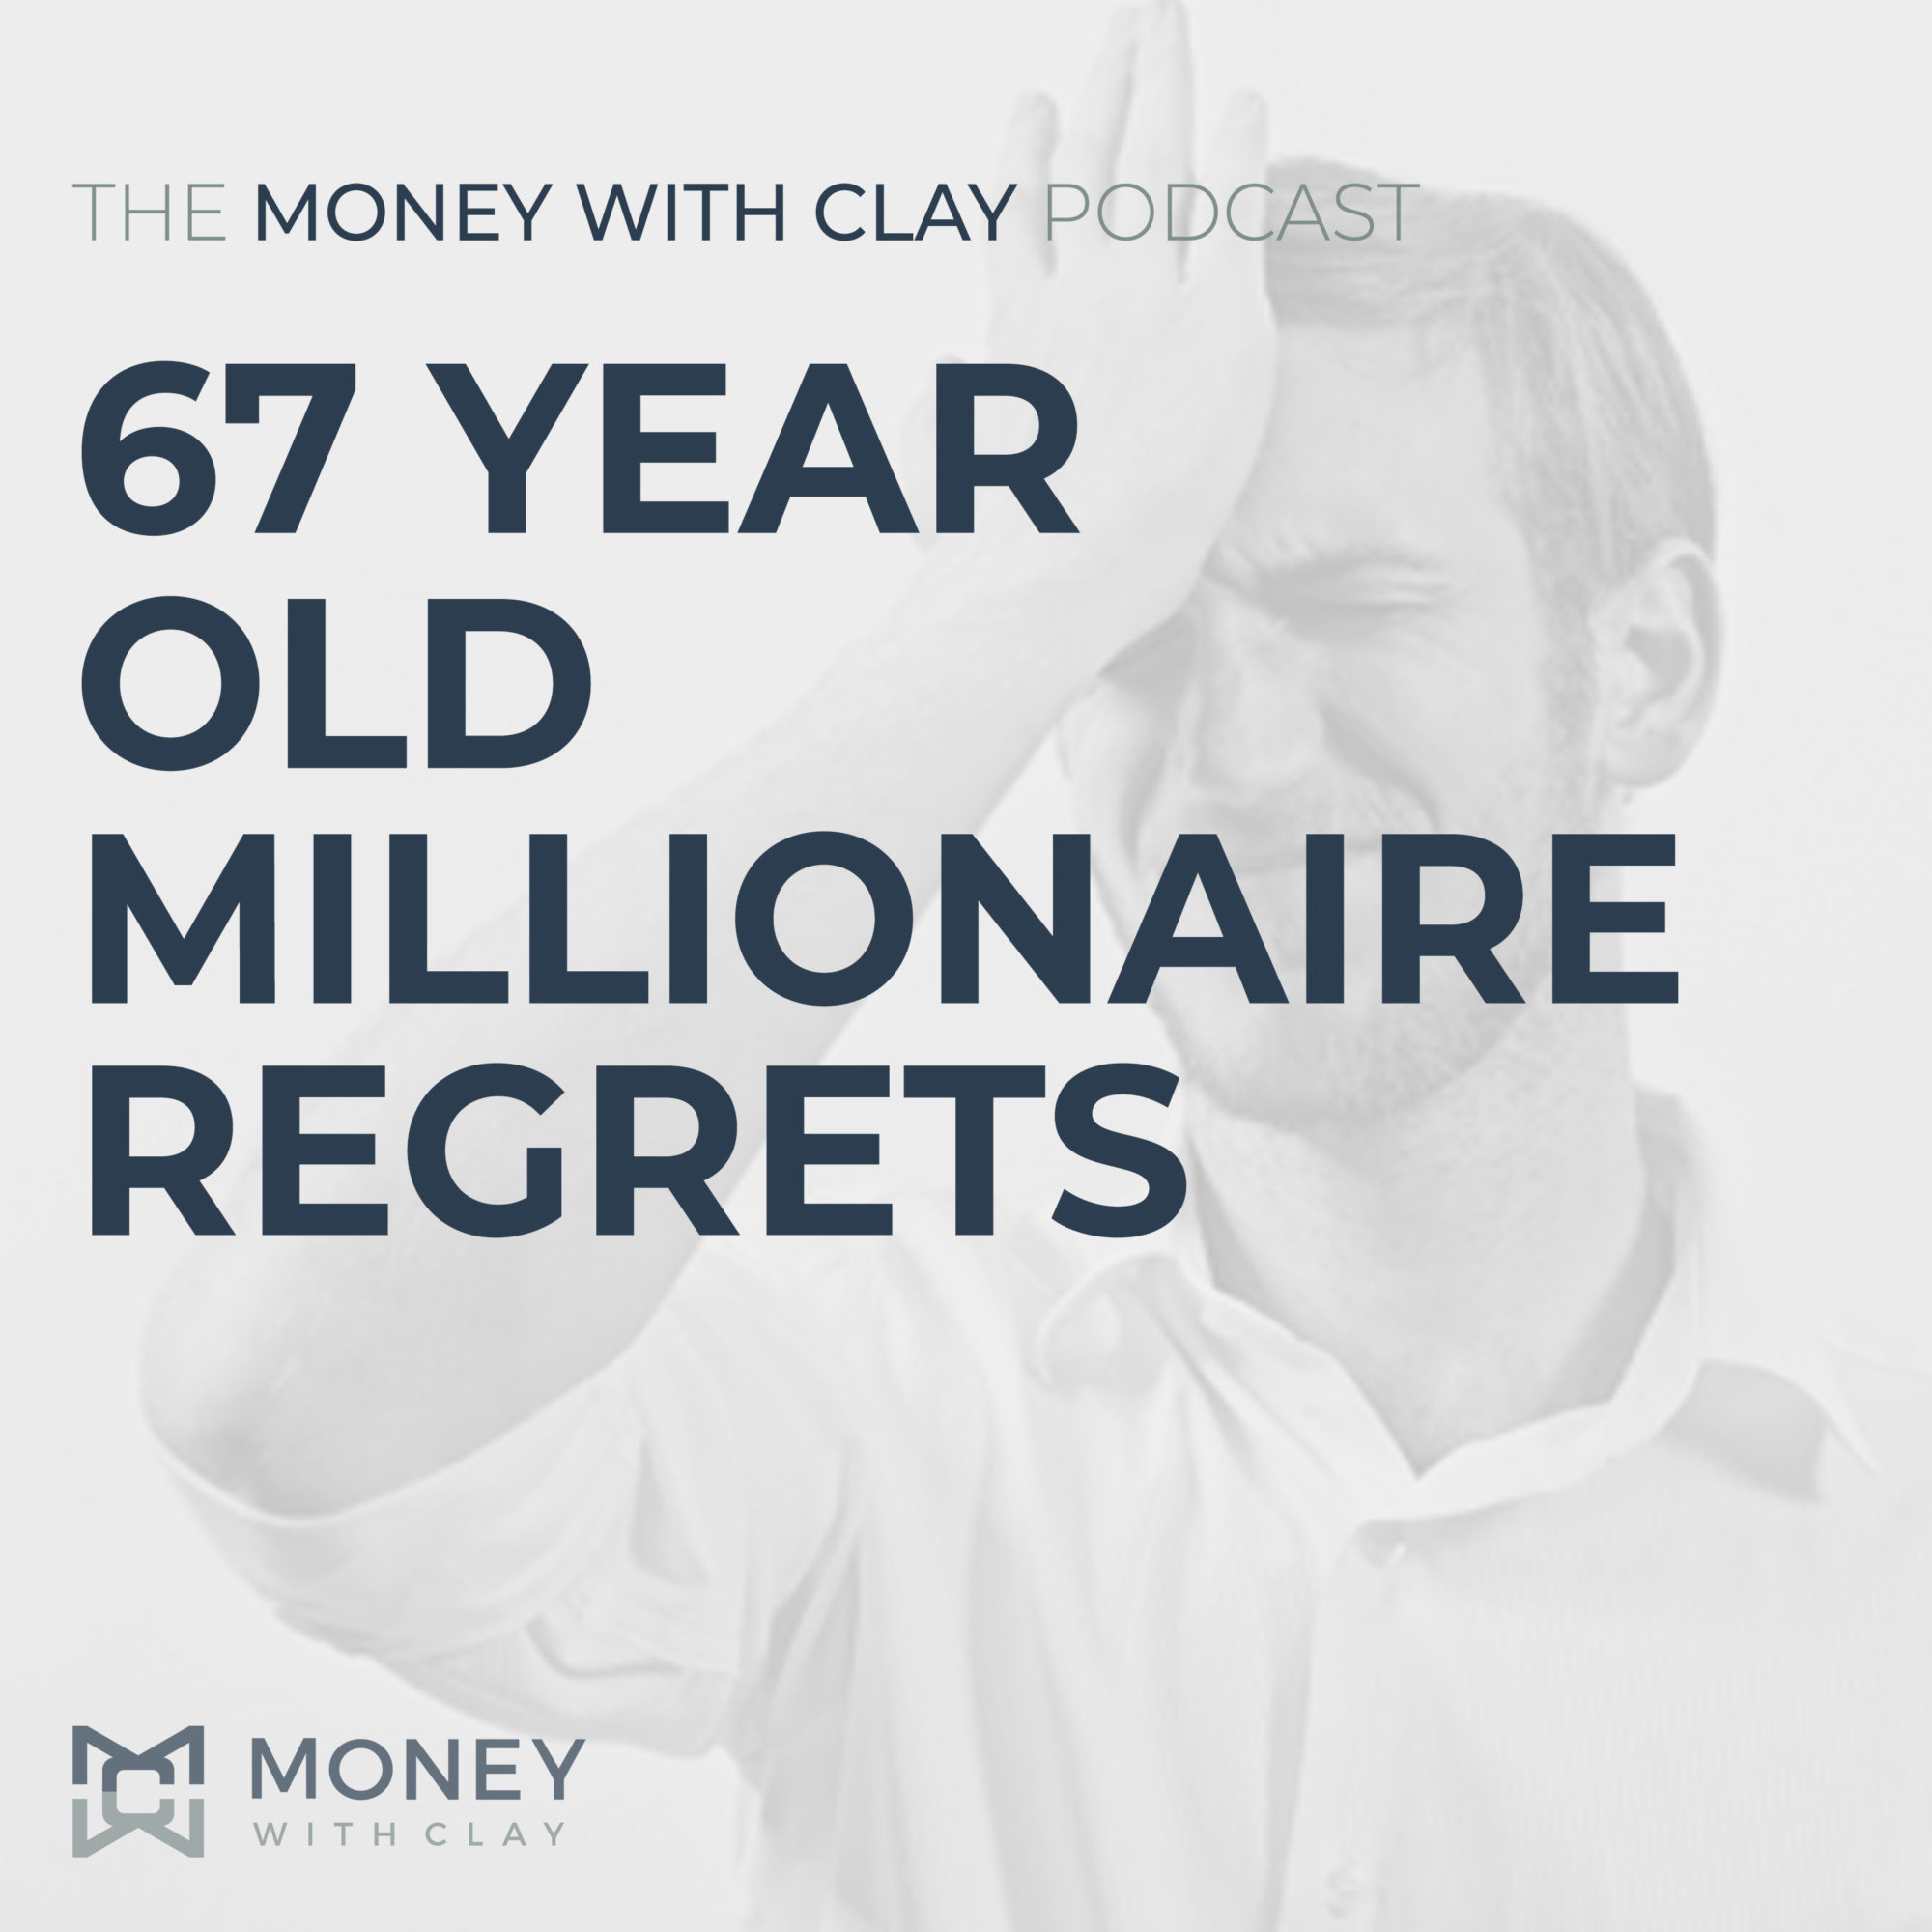 #097 - 67 Year Old Millionaire Regrets